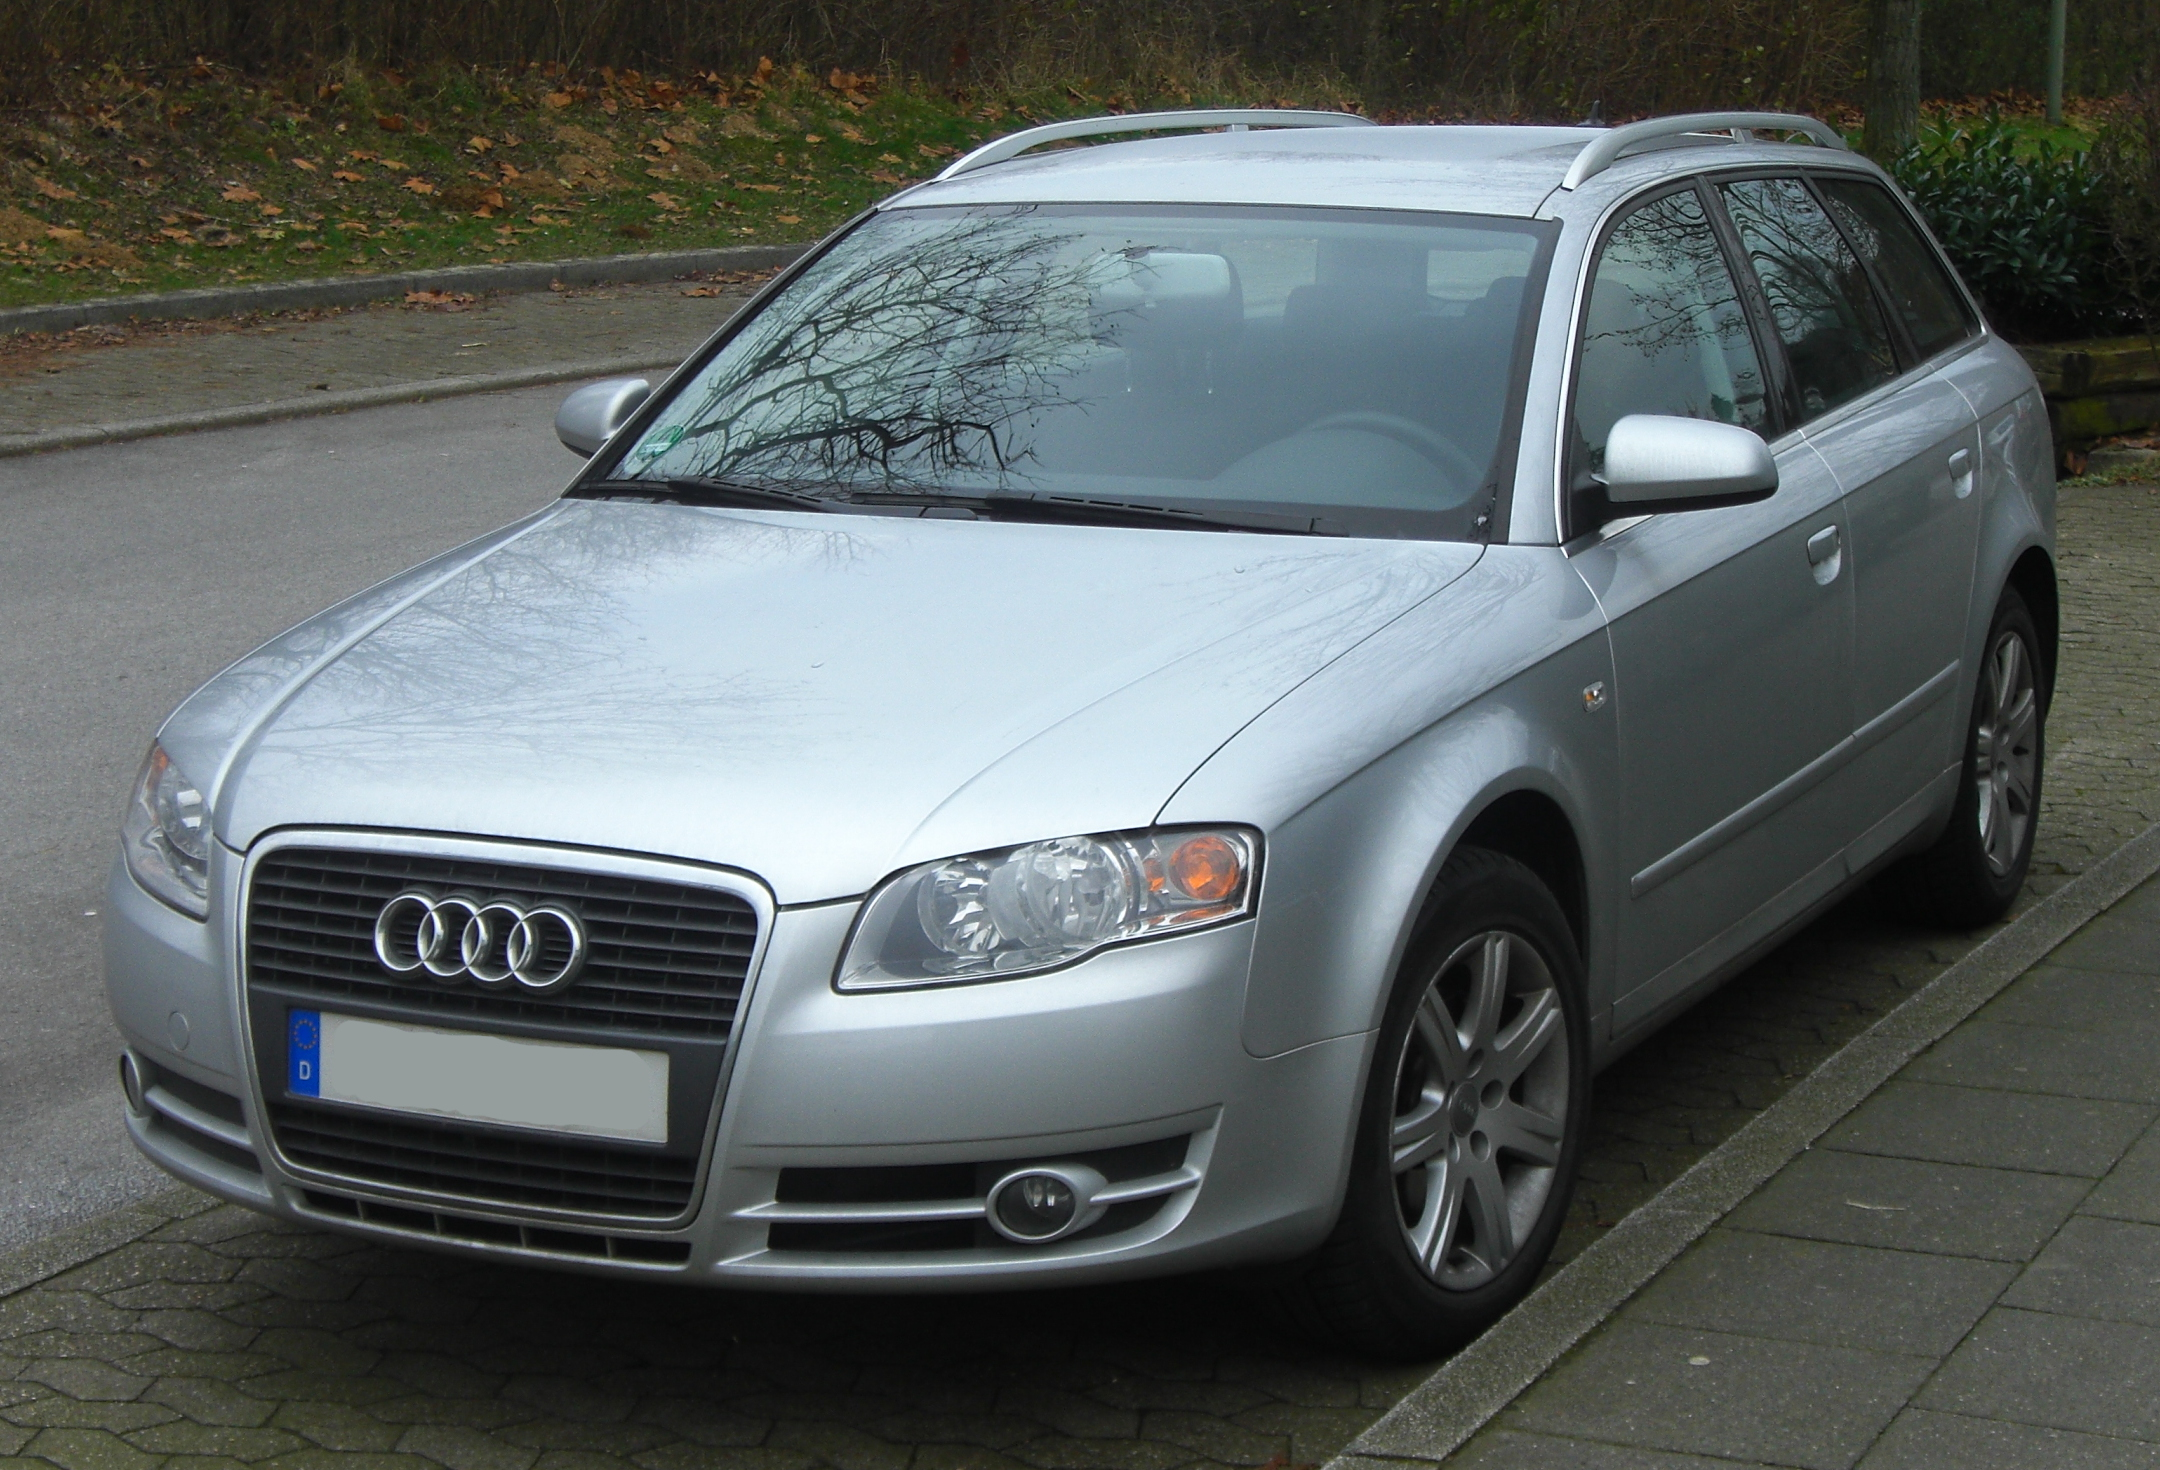 Alfa img - Showing > 2004 Audi A4 Front